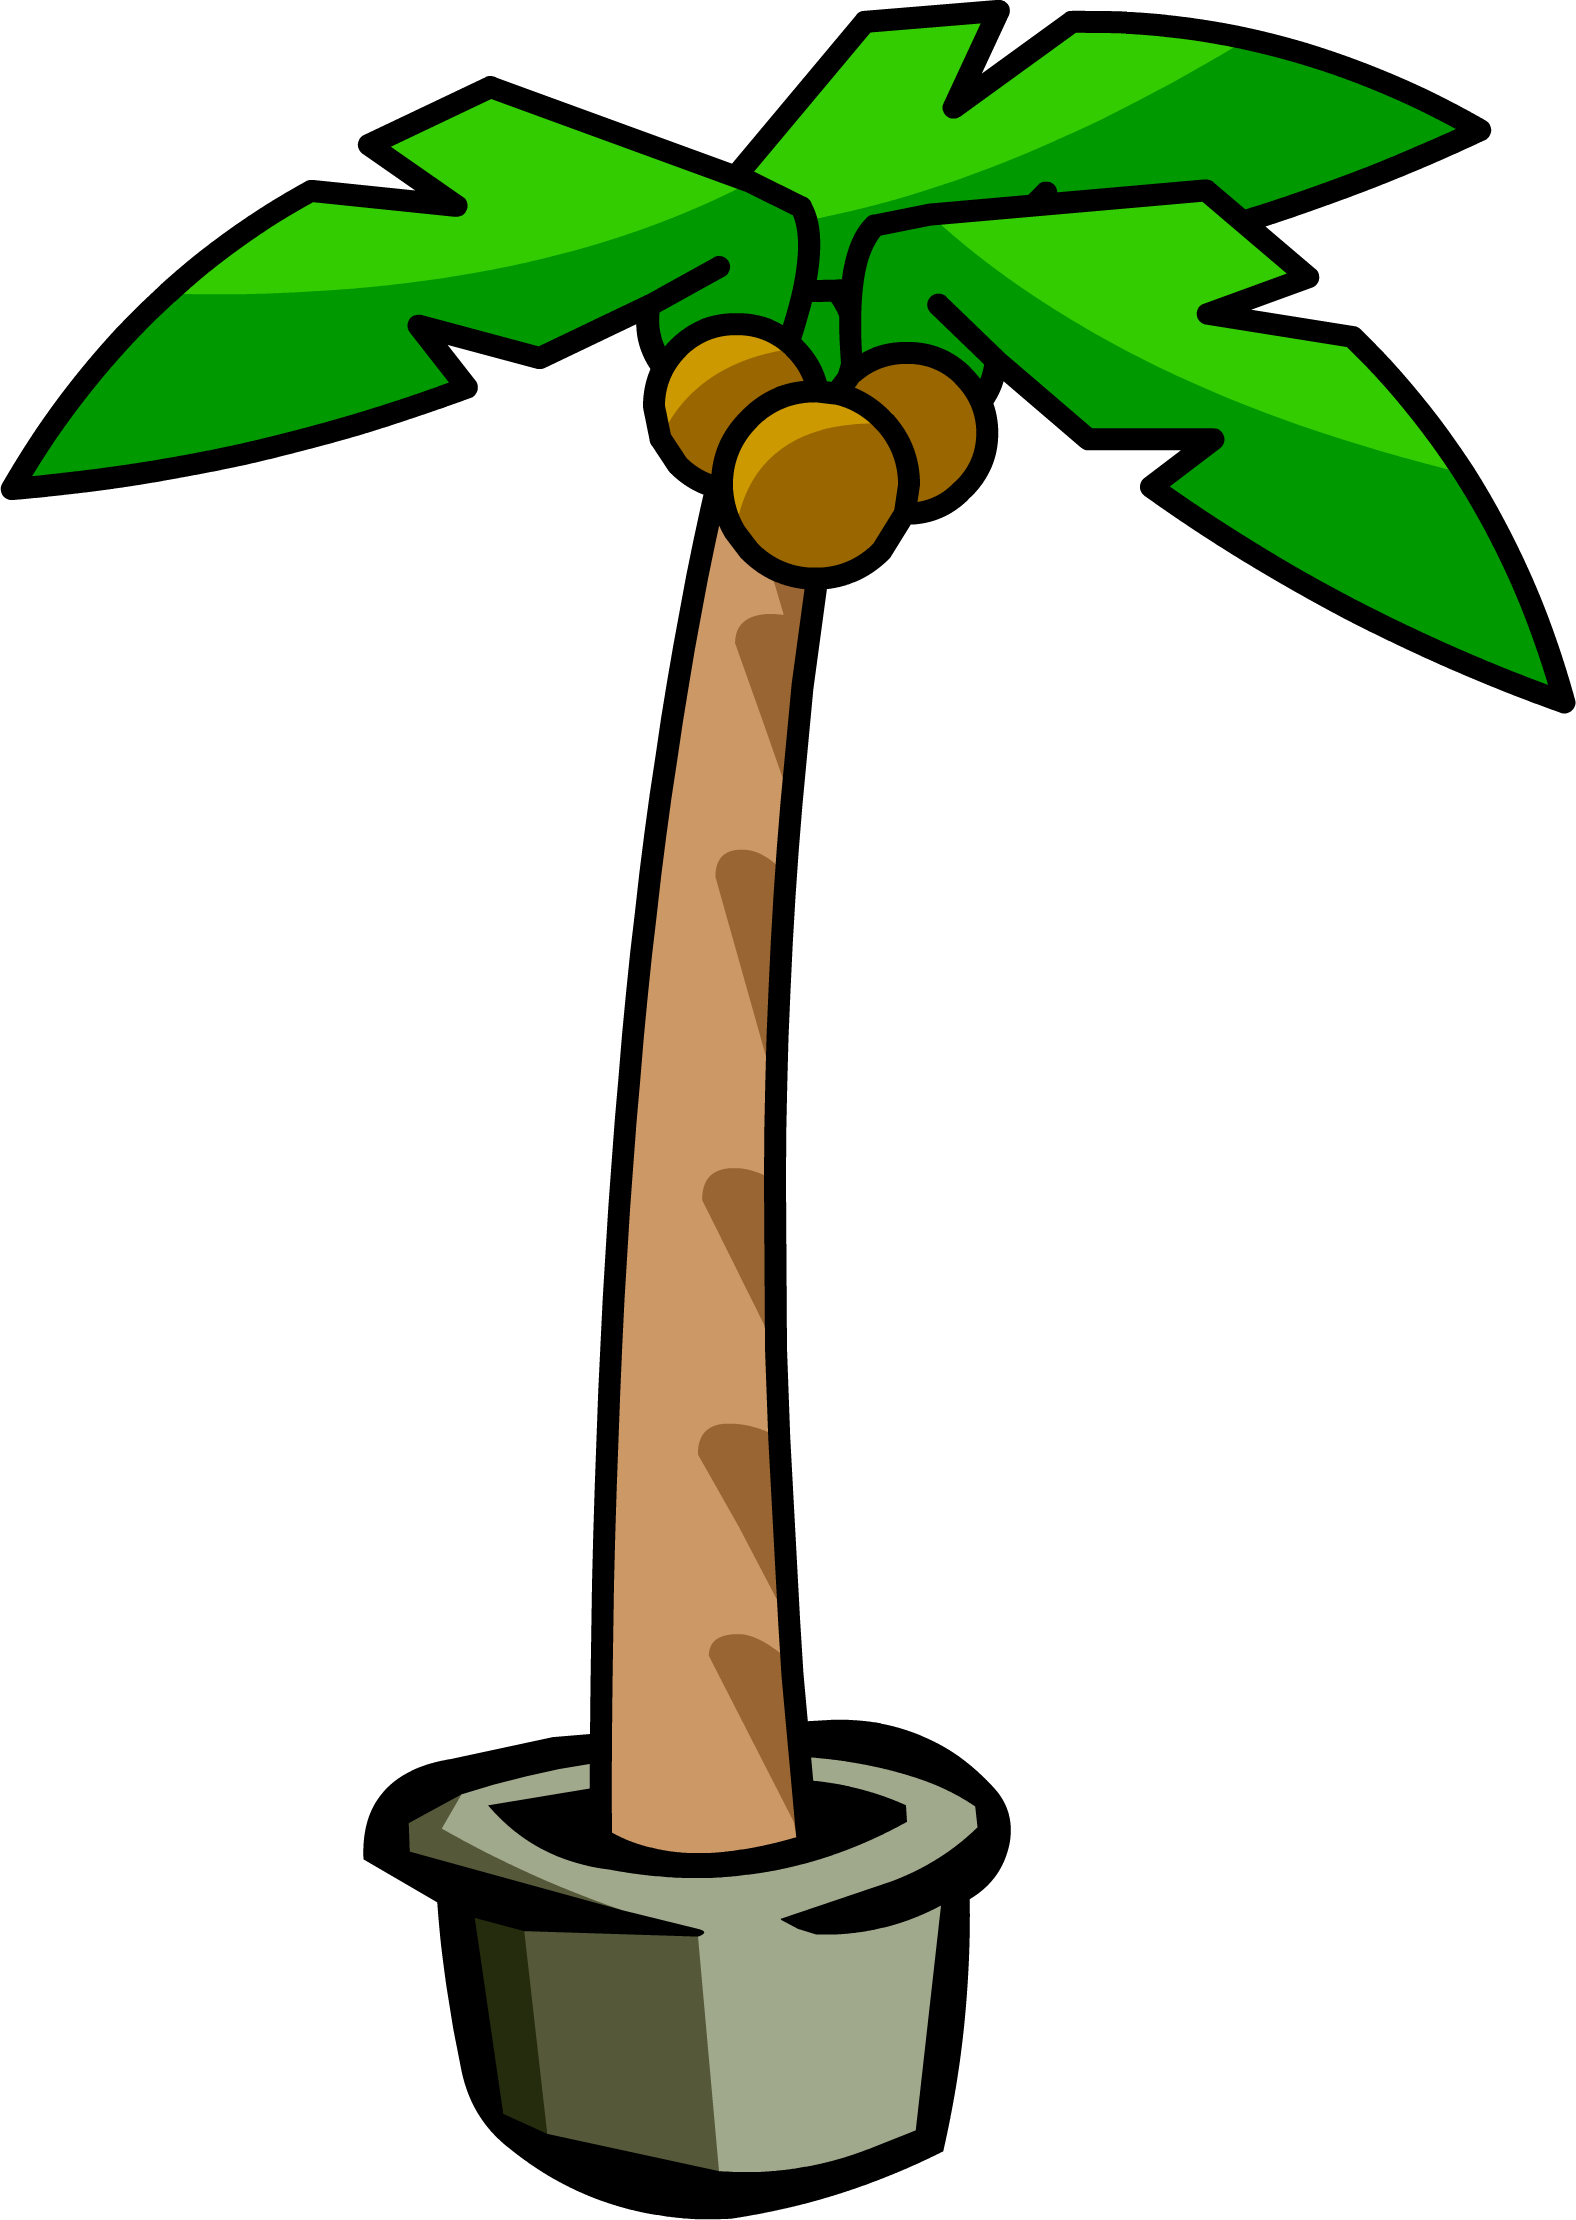 Dead palm tree png. Image club penguin wiki